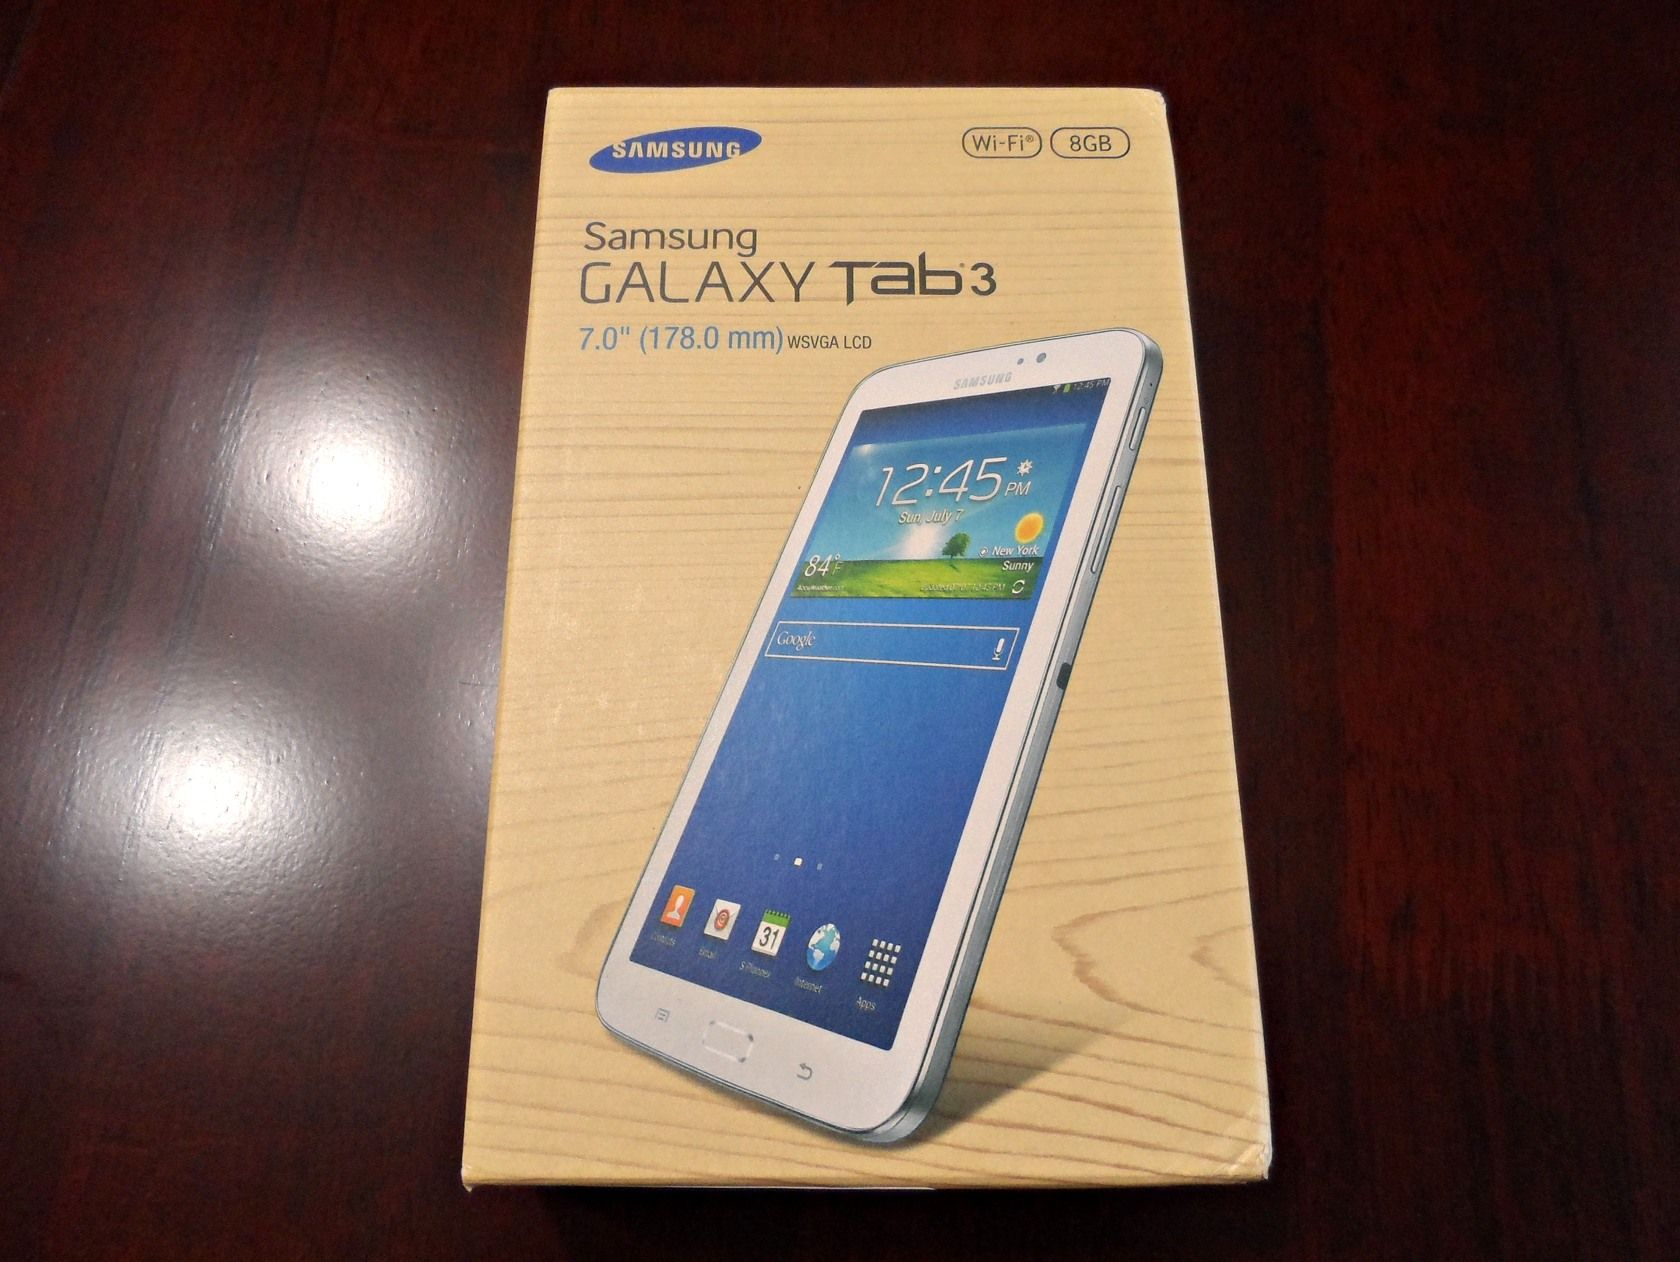 Samsung Galaxy Tab 3 7.0 Review And Giveaway